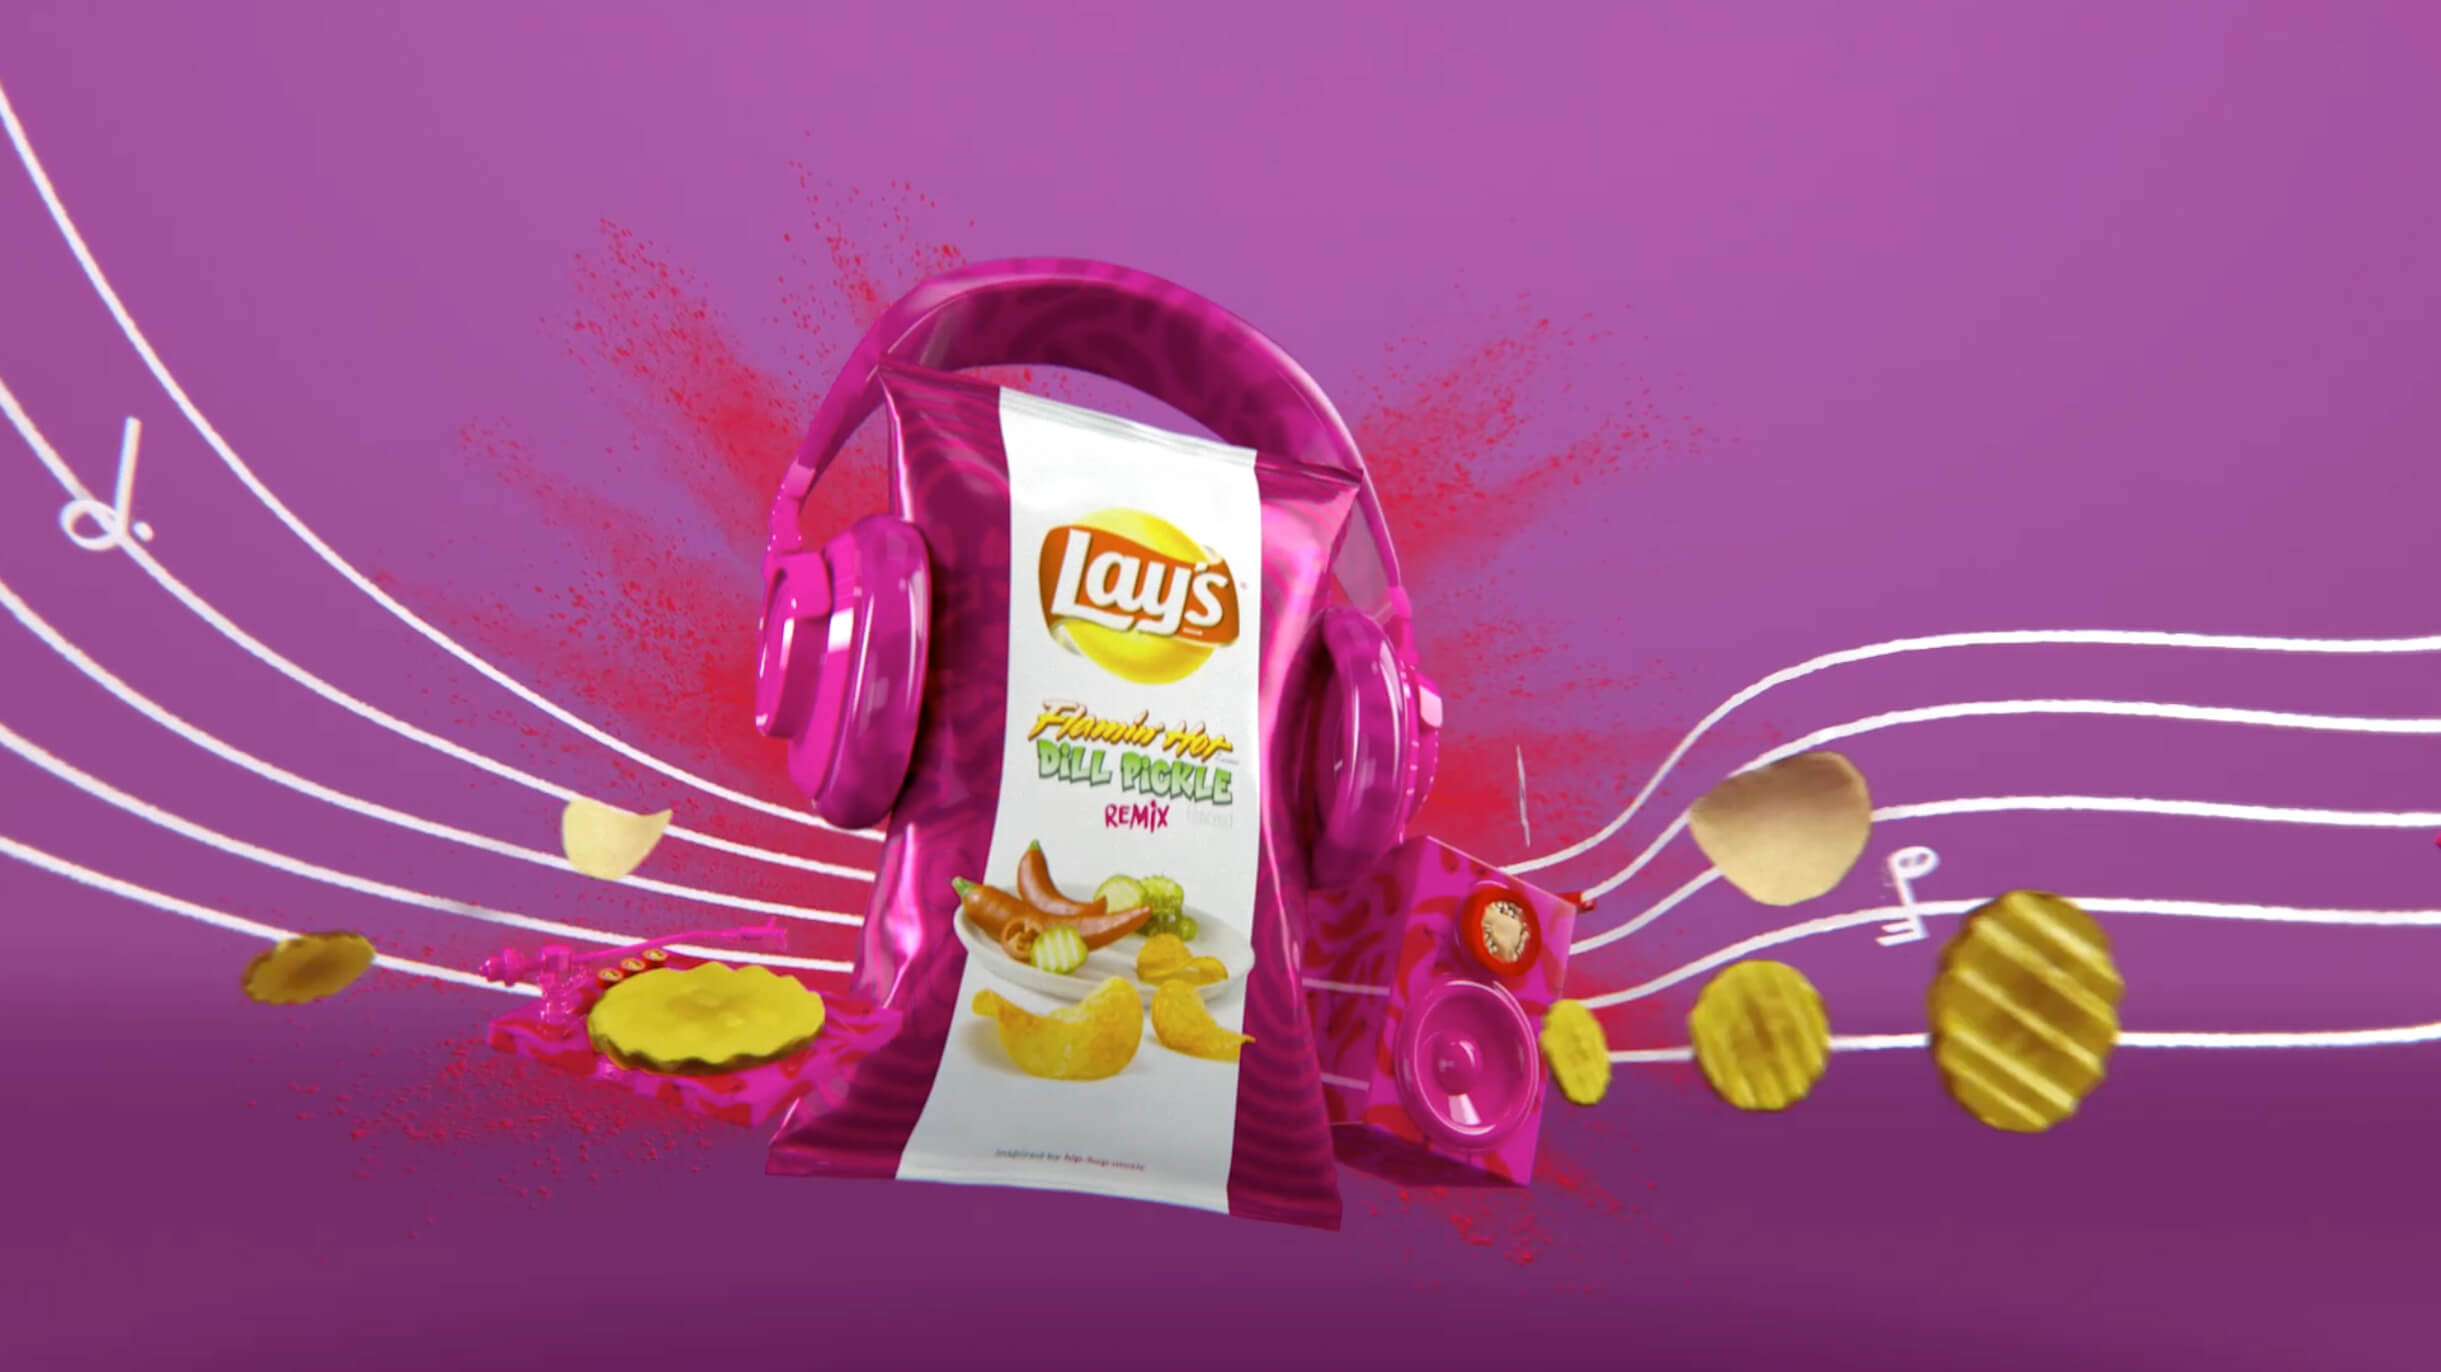 Through a partnership with NBC's The Voice, Lay's garnered national attention and awareness for the campaign.